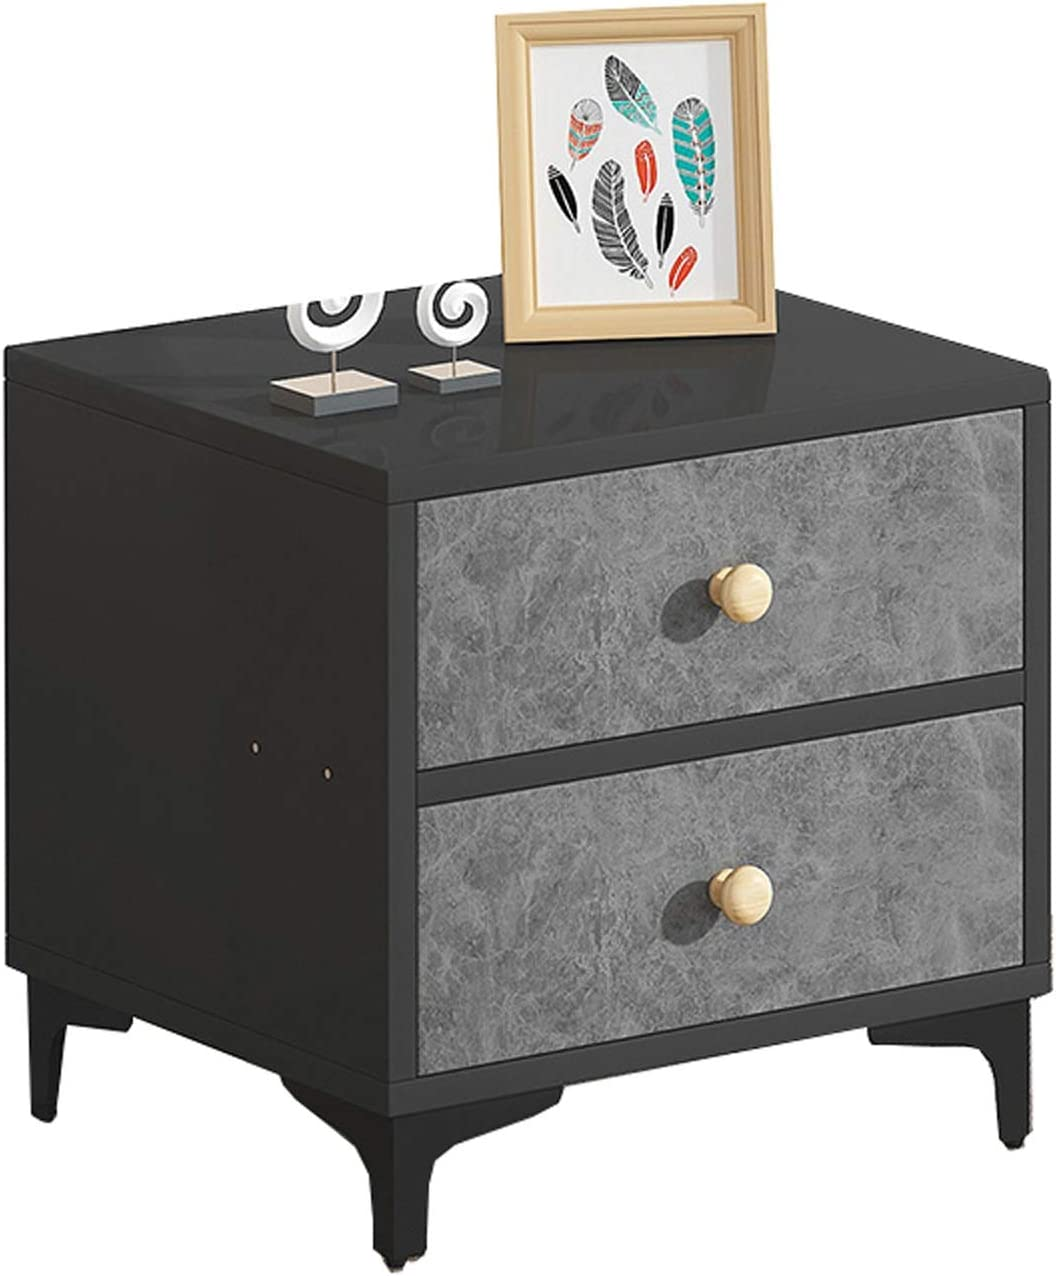 LQ Metal Leg 2021 model Side Table Storage Limited time for free shipping Coffee Tea 2-Drawer